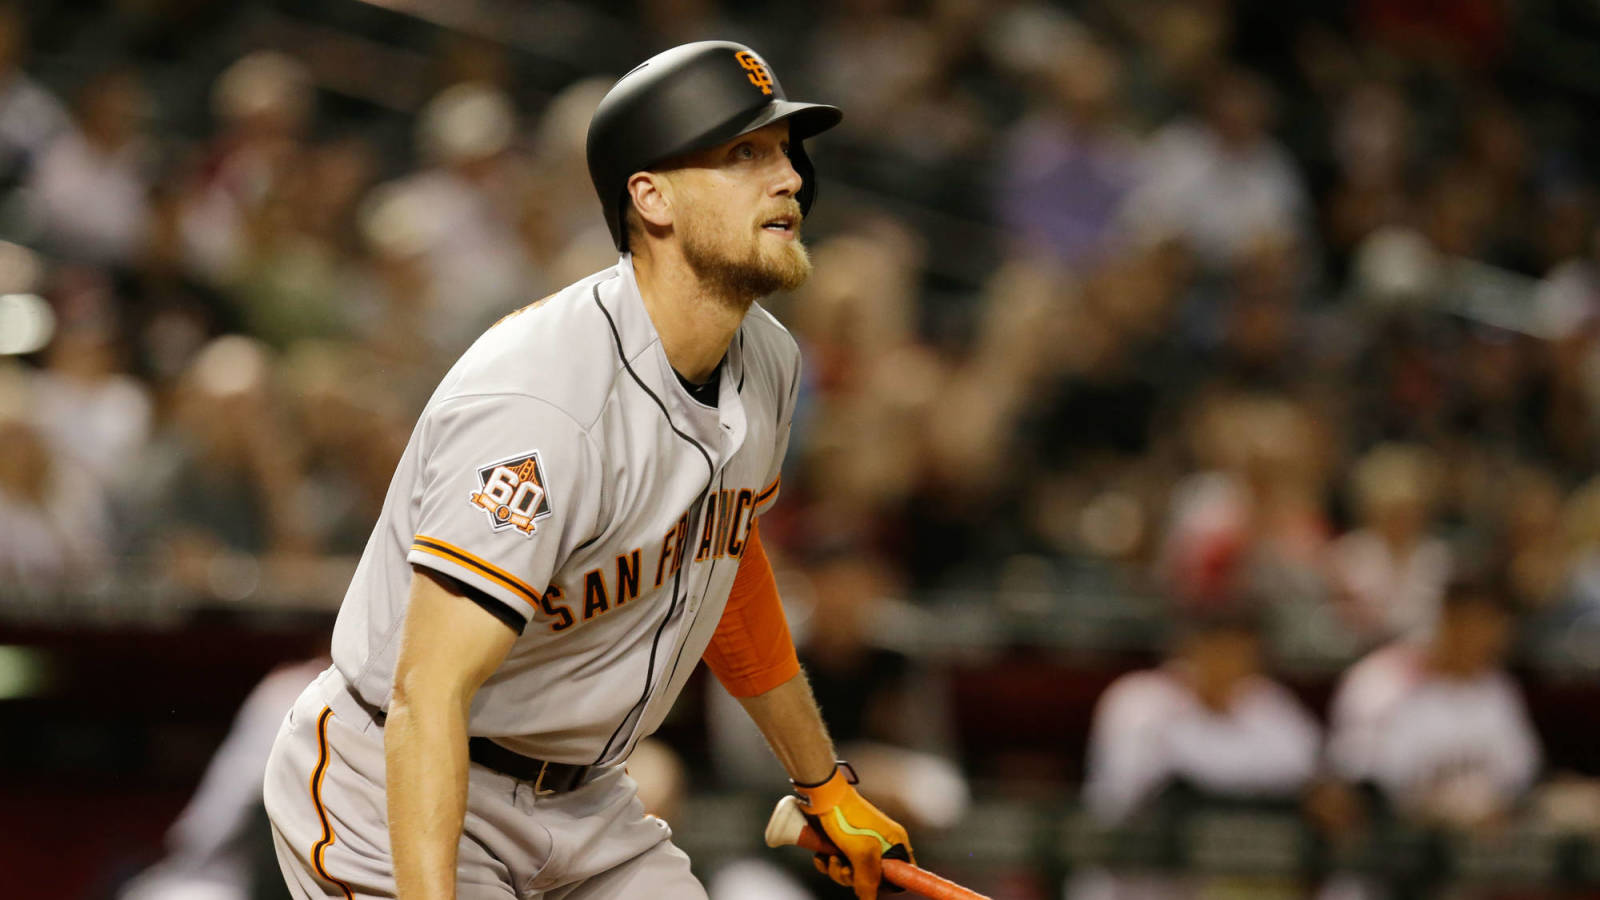 Hunter Pence Could Be On The Outs With San Francisco